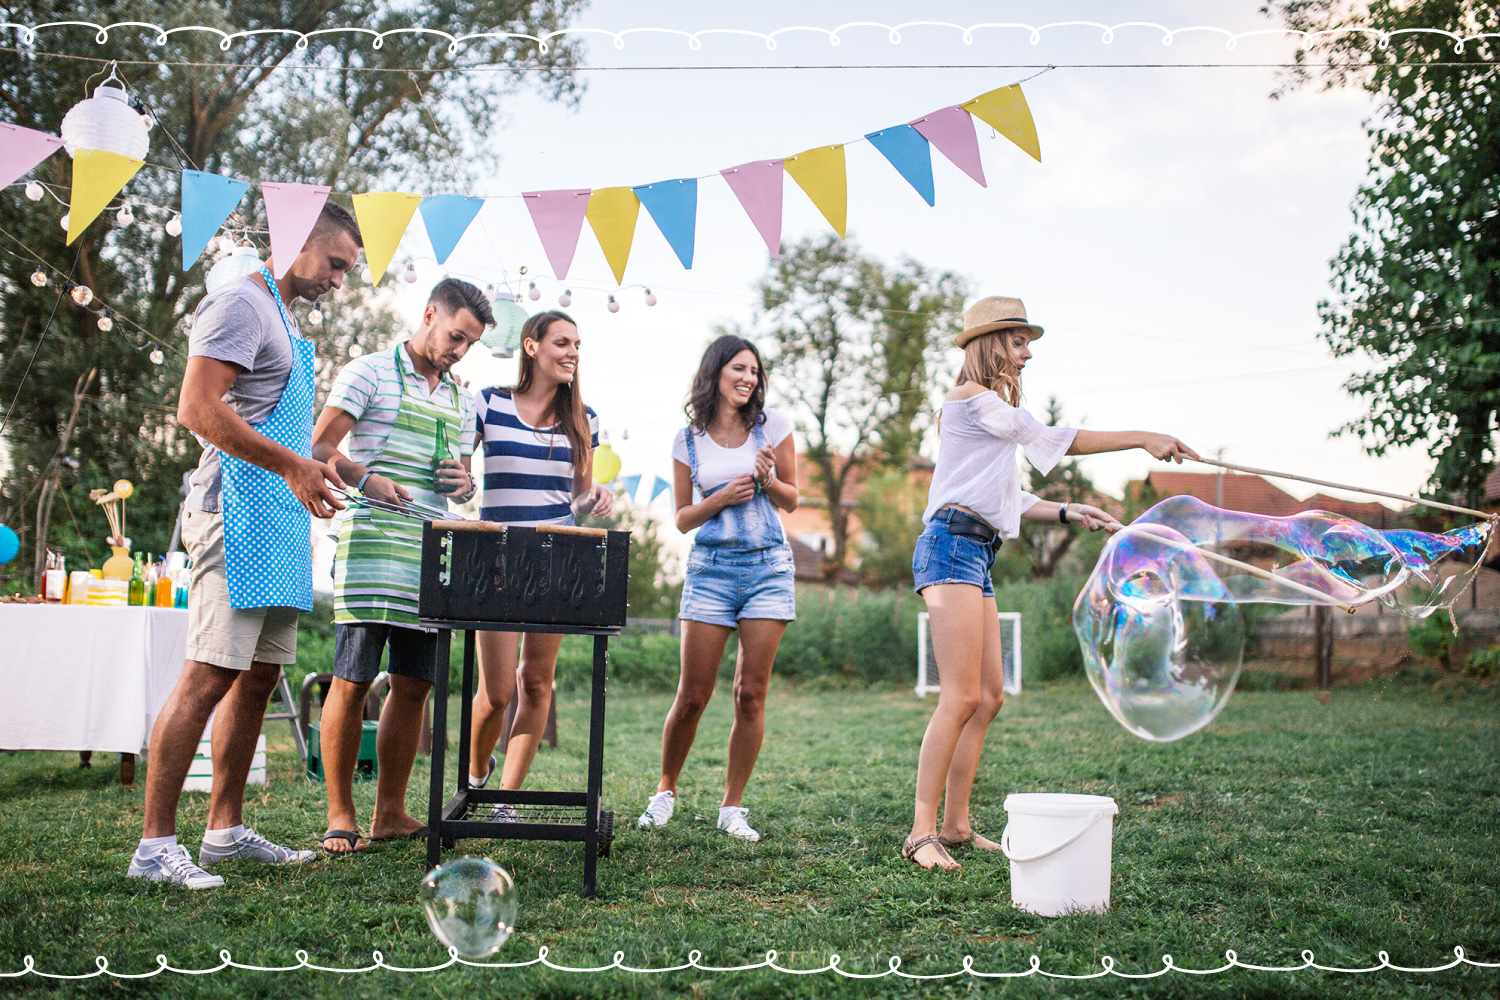 adult friends grilling outside and playing with bubbles